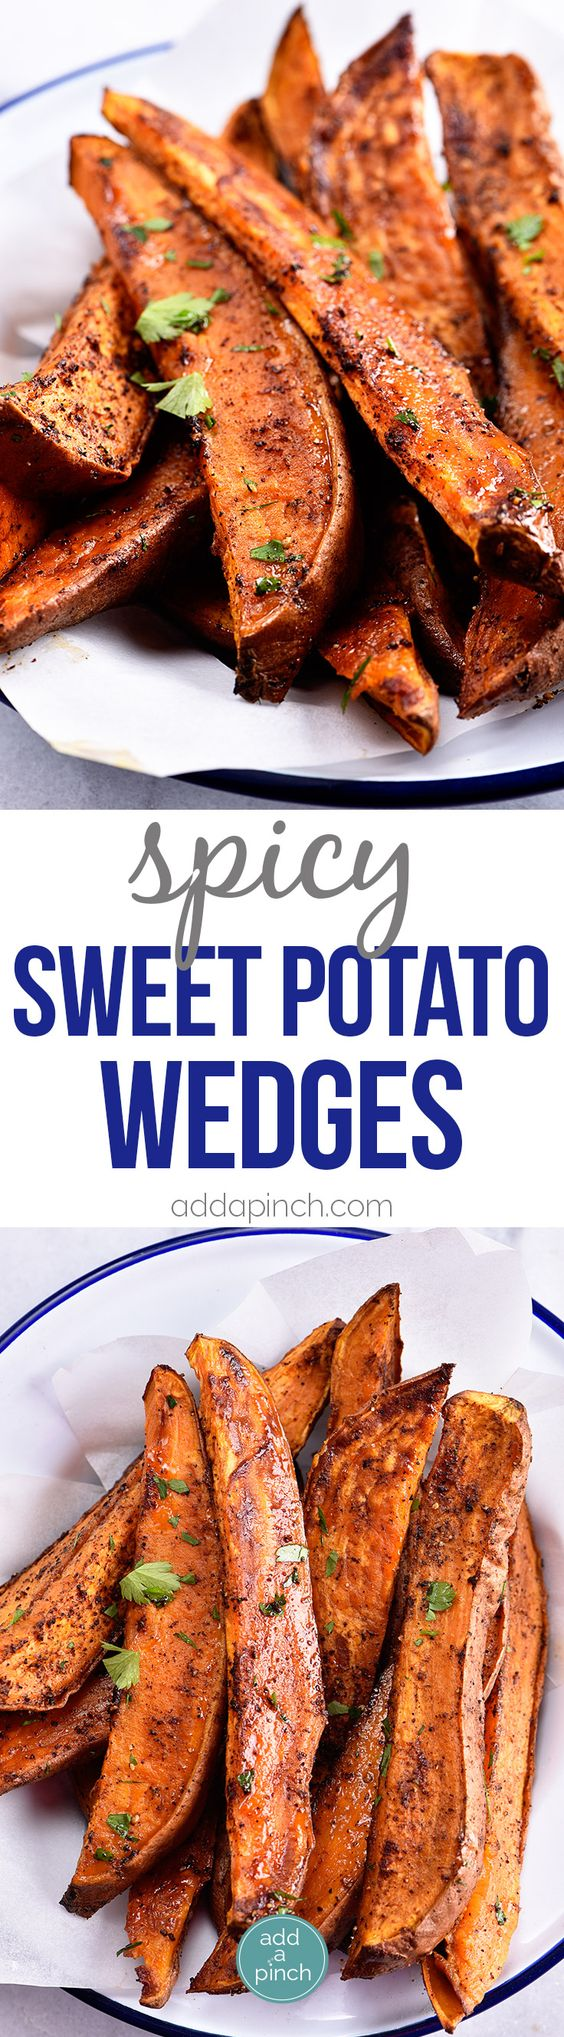 Spicy Sweet Potato Wedges Recipe - Spicy Roasted Sweet Potato Wedges make an easy and delicious recipe! Made with just five ingredients, these roasted sweet potatoes will definitely become a favorite! // addapinch.com